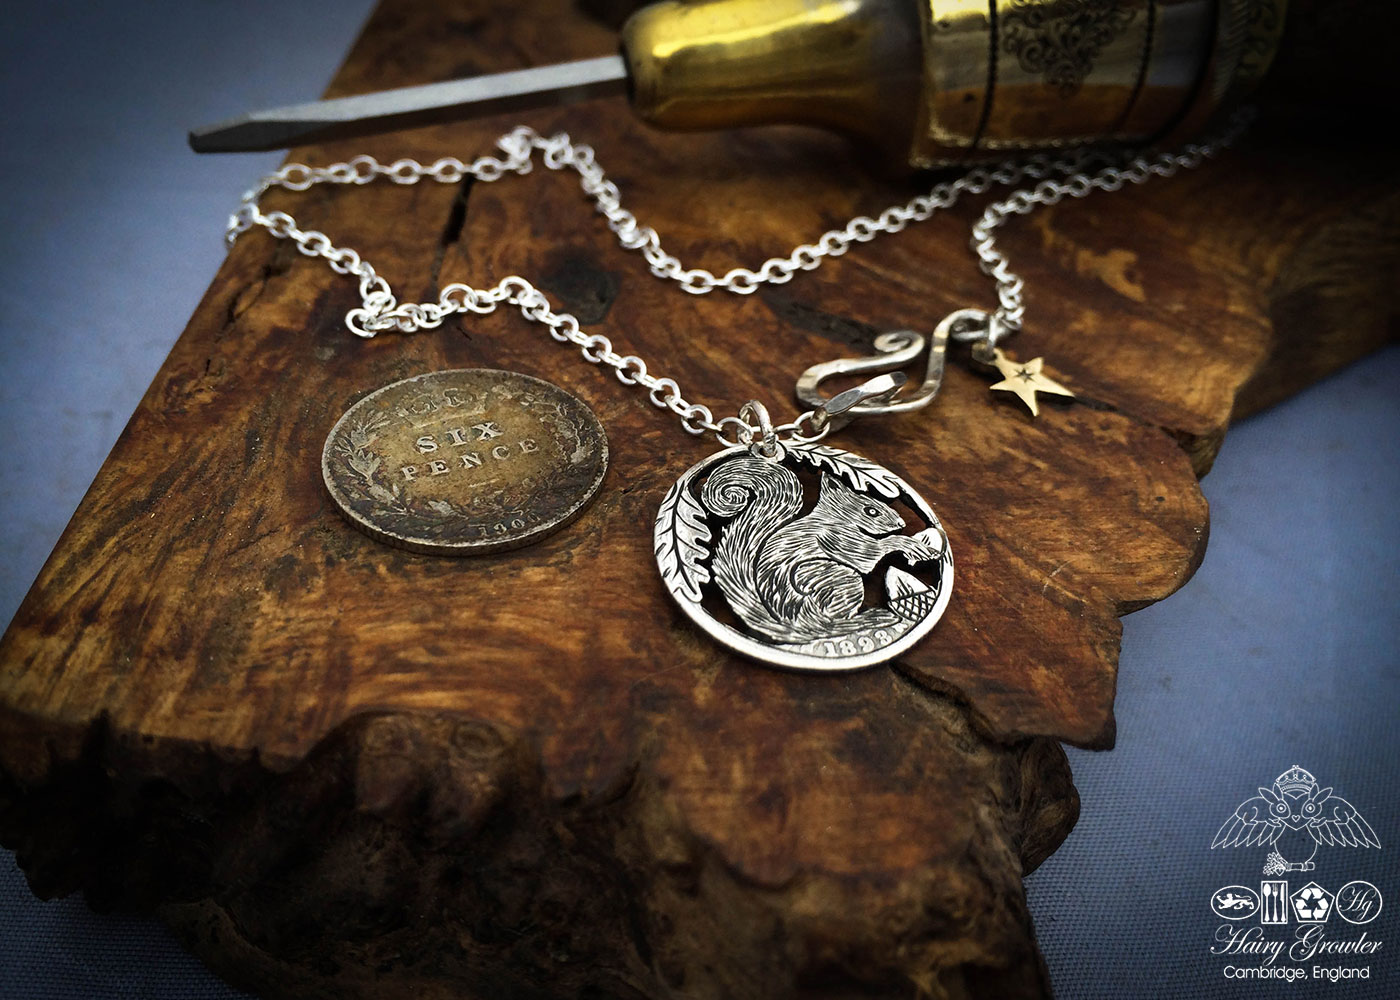 Handmade and repurposed silver sixpence coin squirrel pendant necklace